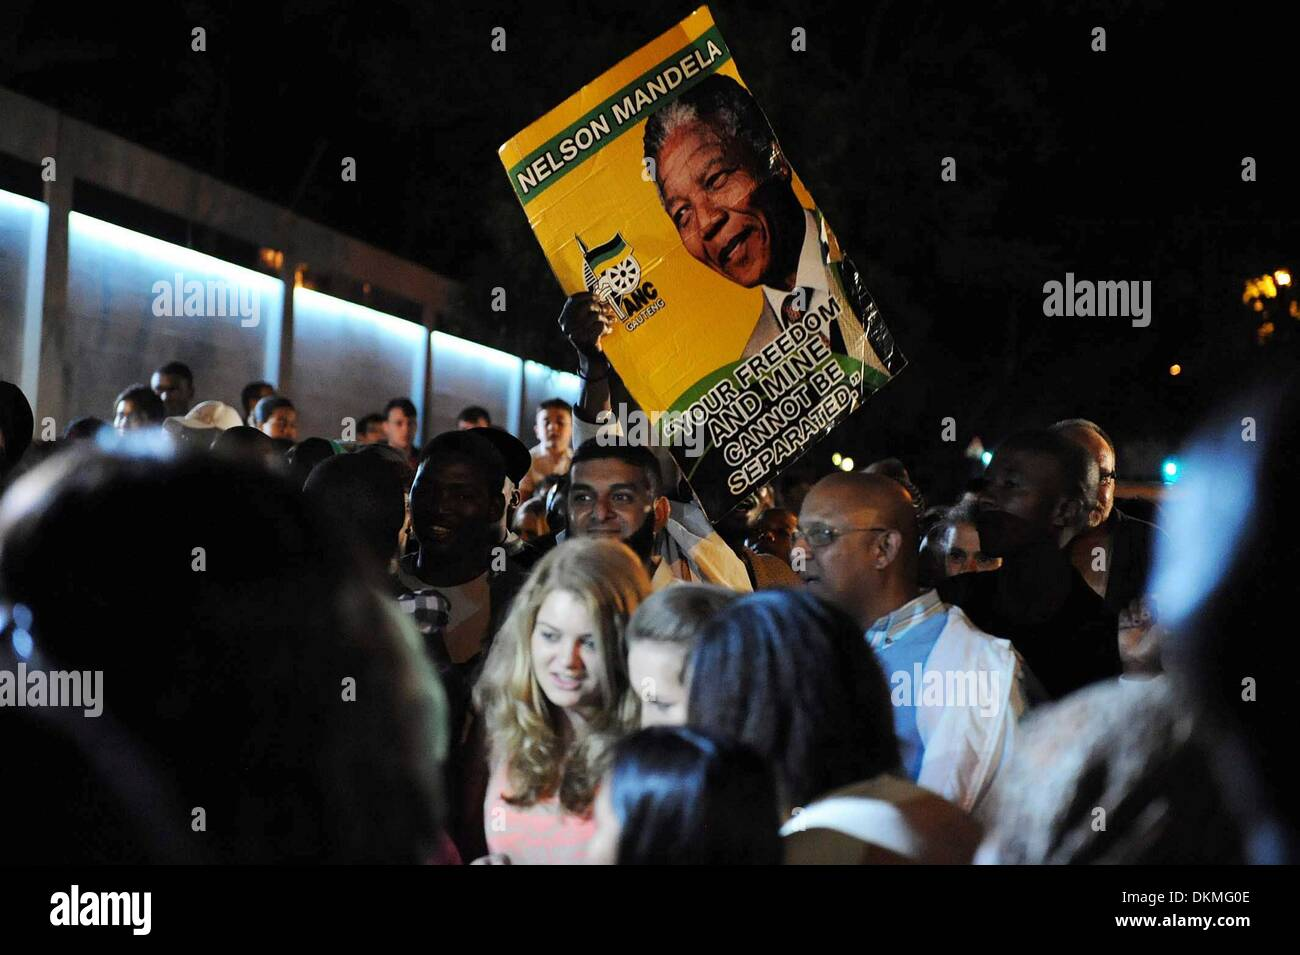 JOHANNESBURG, SOUTH AFRICA: People gathering in Houghton on December 6, 2013, in Johannesburg, South Africa. The Father of the Nation, Nelson Mandela, Tata Madiba, passed away quietly on the evening of December 5, 2013 at his home in Houghton with family. (Photo by Gallo Images / The Times / Alon Skuy) - Stock Image